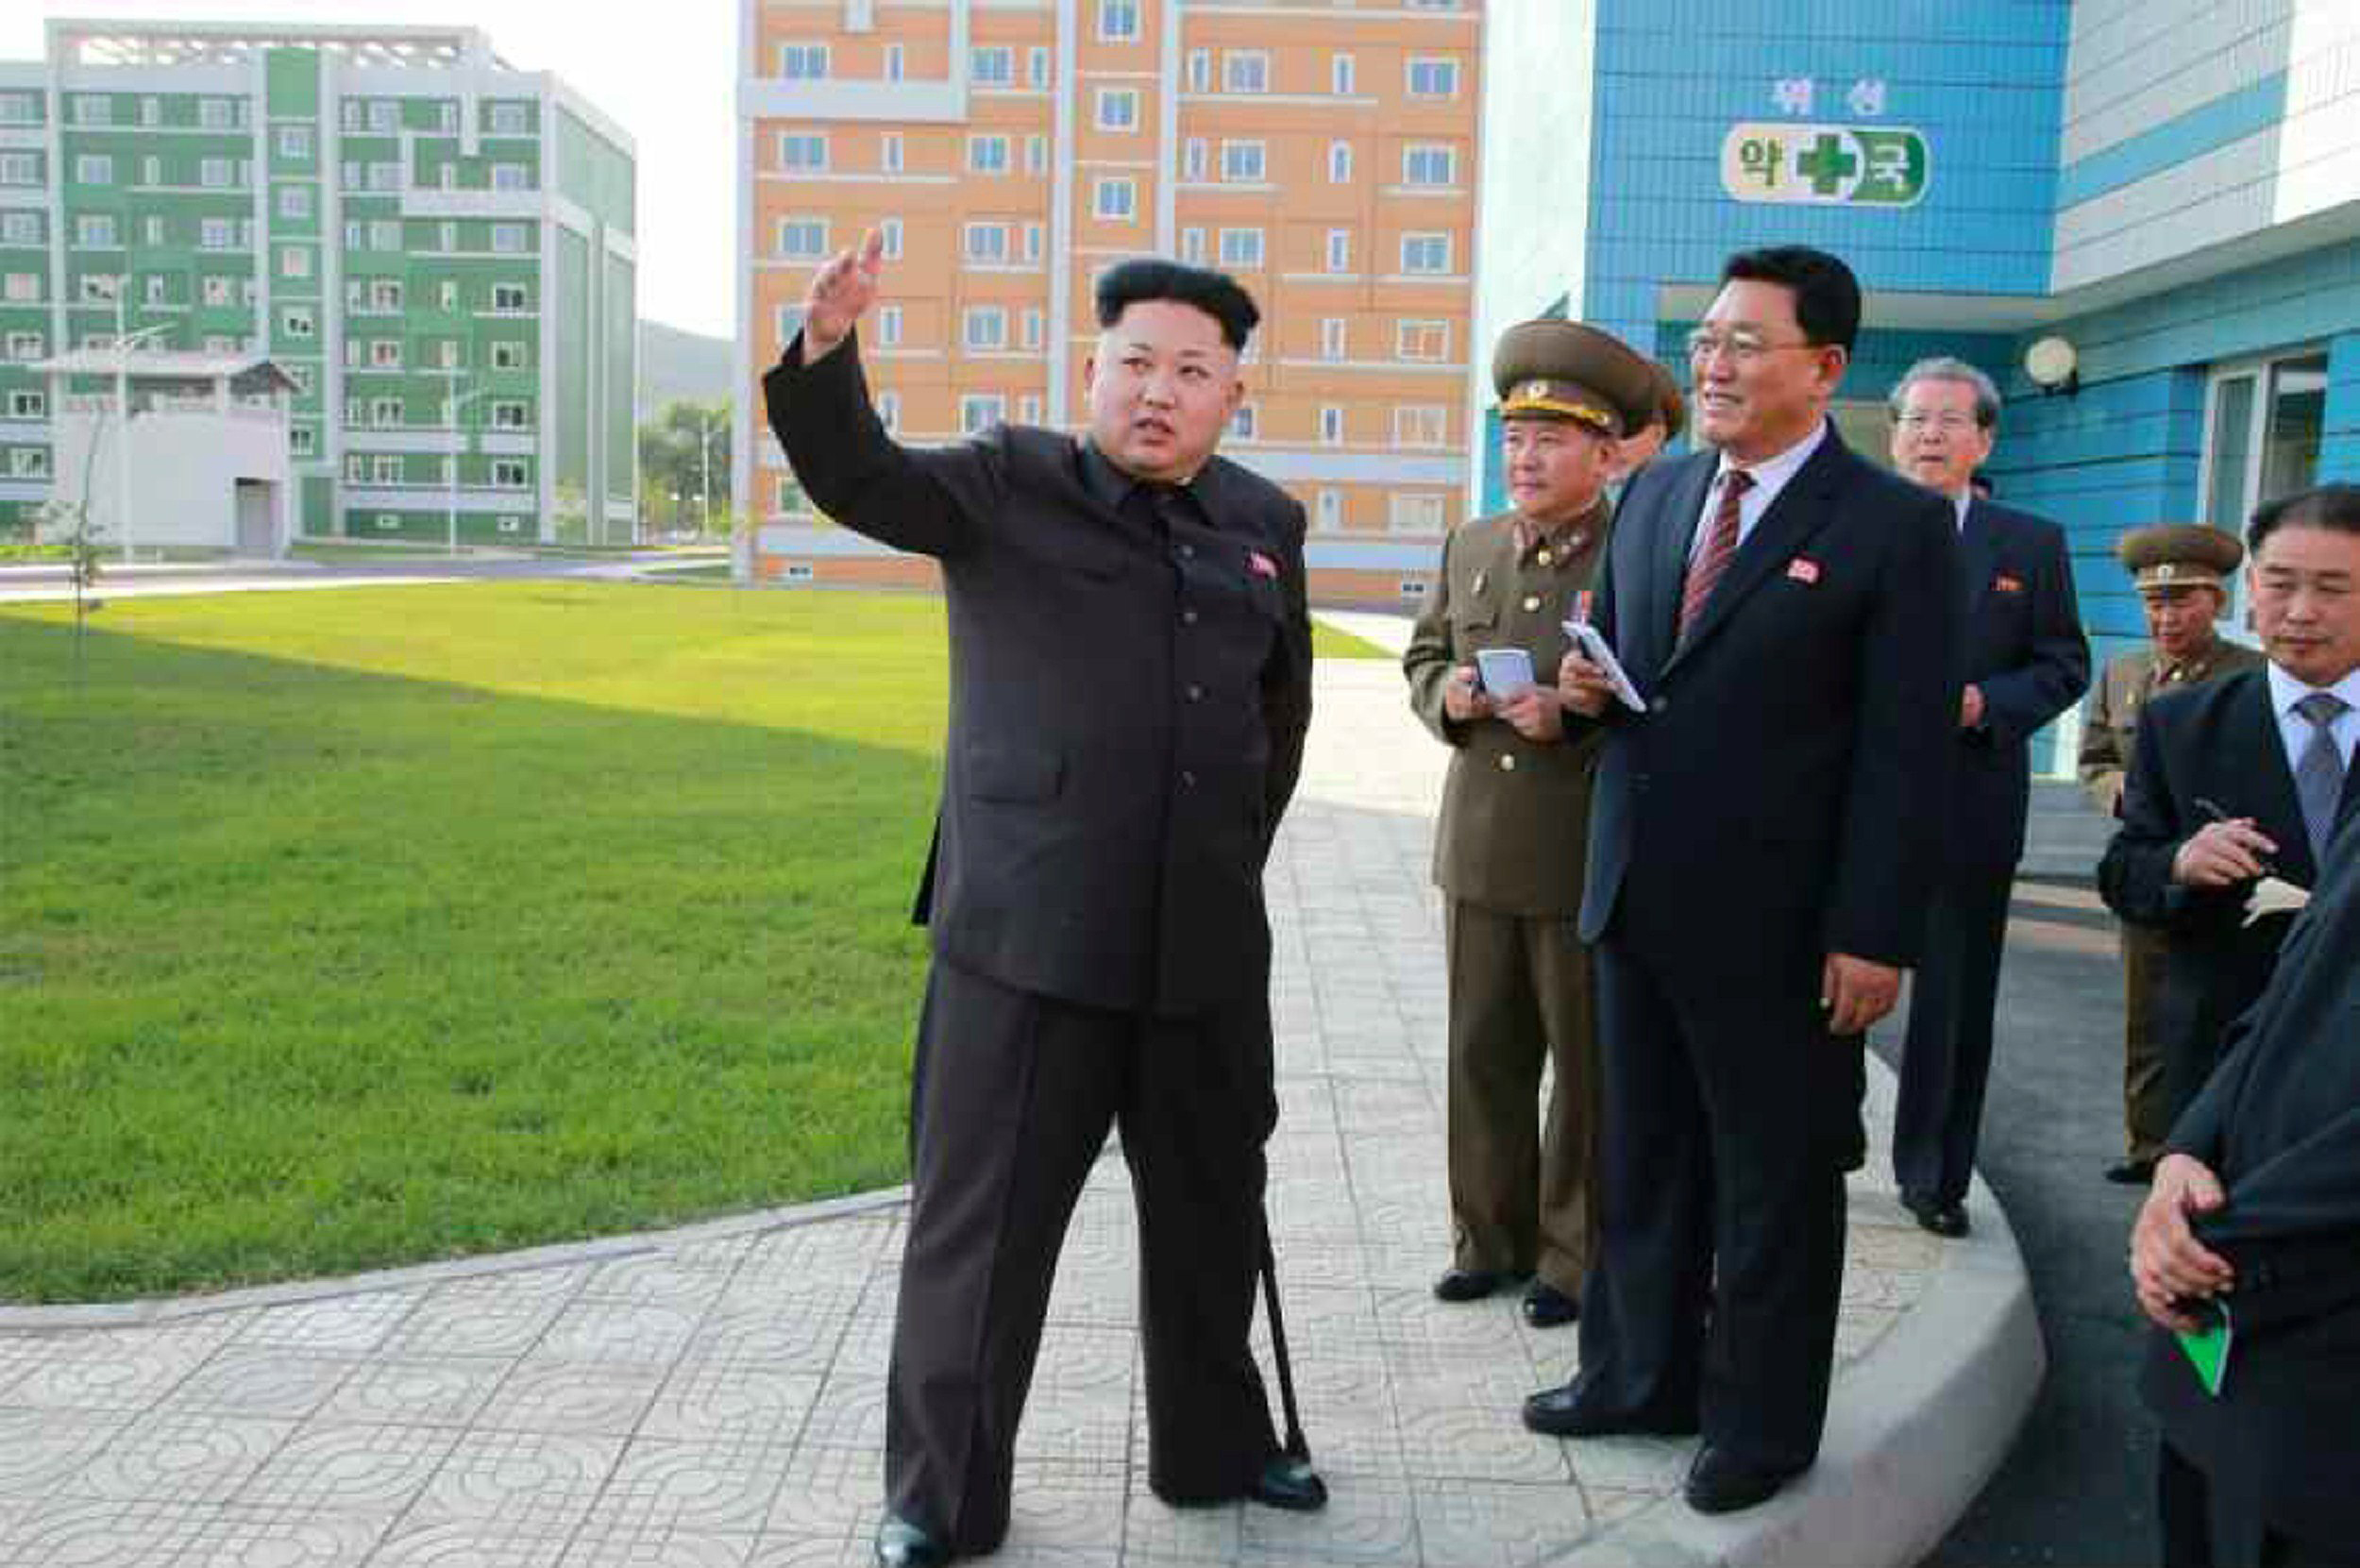 Kim Jong-Un appears publicly, but needs a cane after ankle surgery